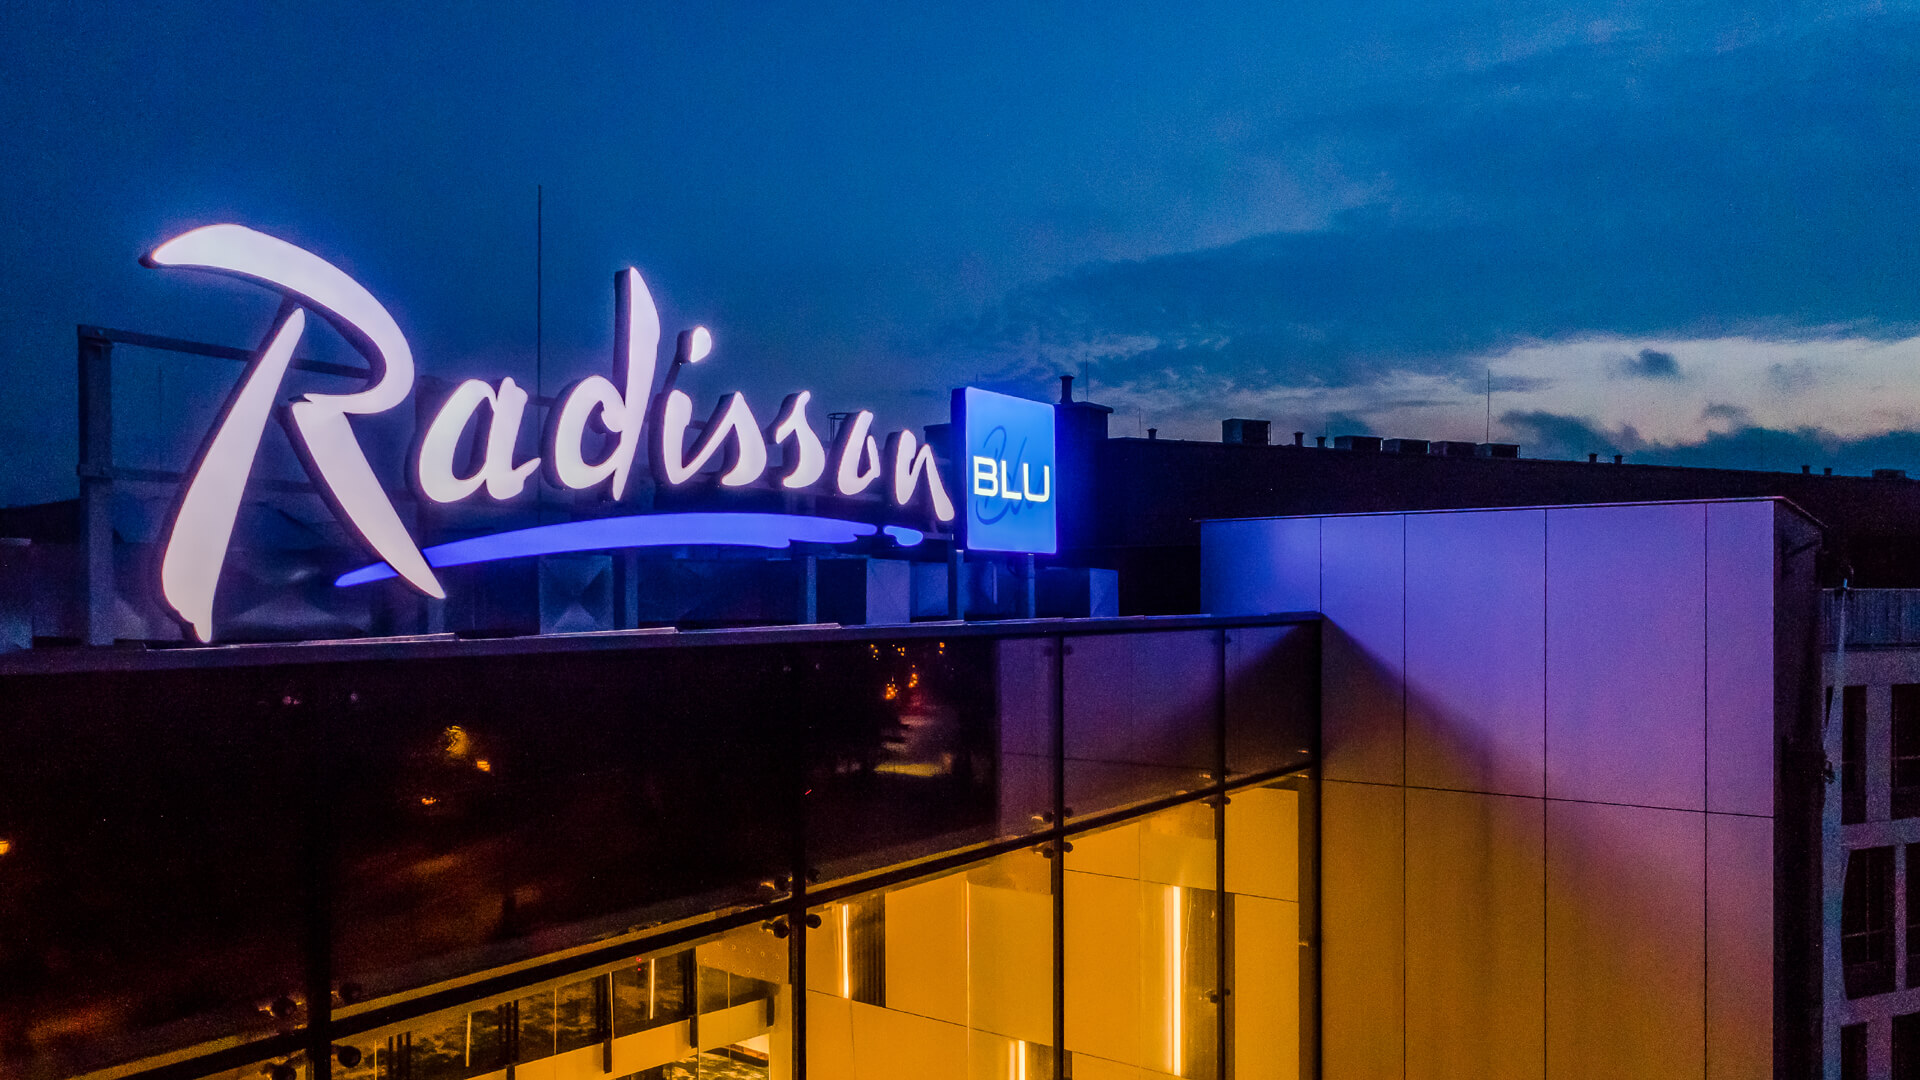 radisson ltery - led-letters-logo-radison-poland-sopot-3d-chanel-letters